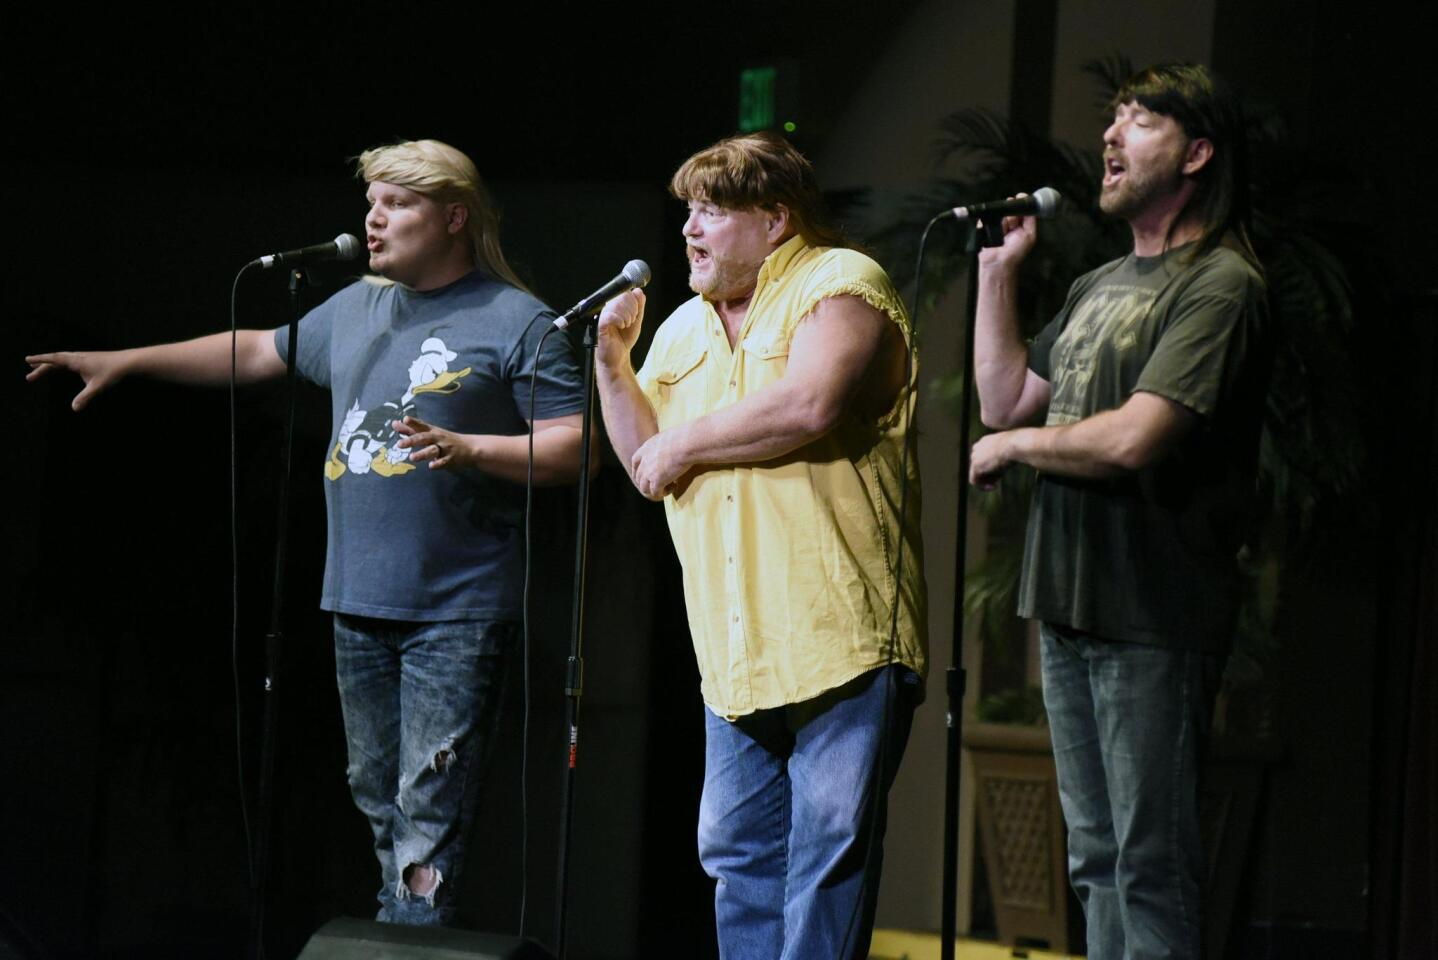 Jonathan Fruge, Matthew Lord, and Blake Davidson are the 3 Redneck Tenors